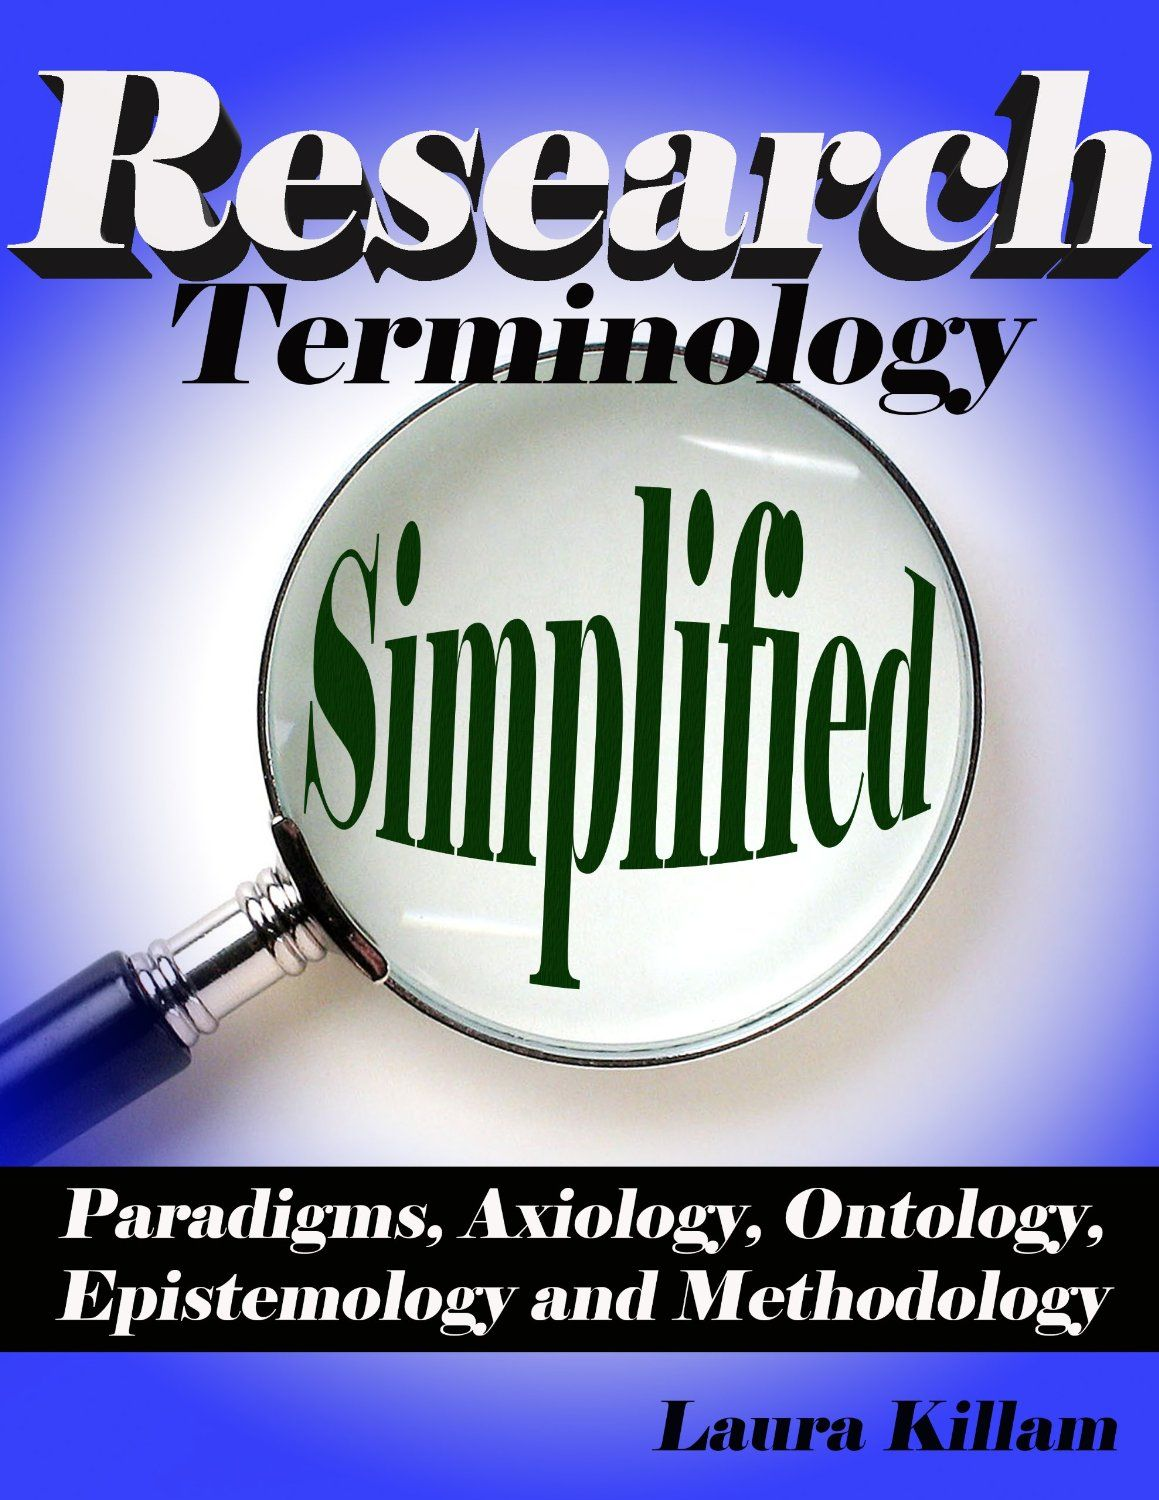 research terminology simplified pdf